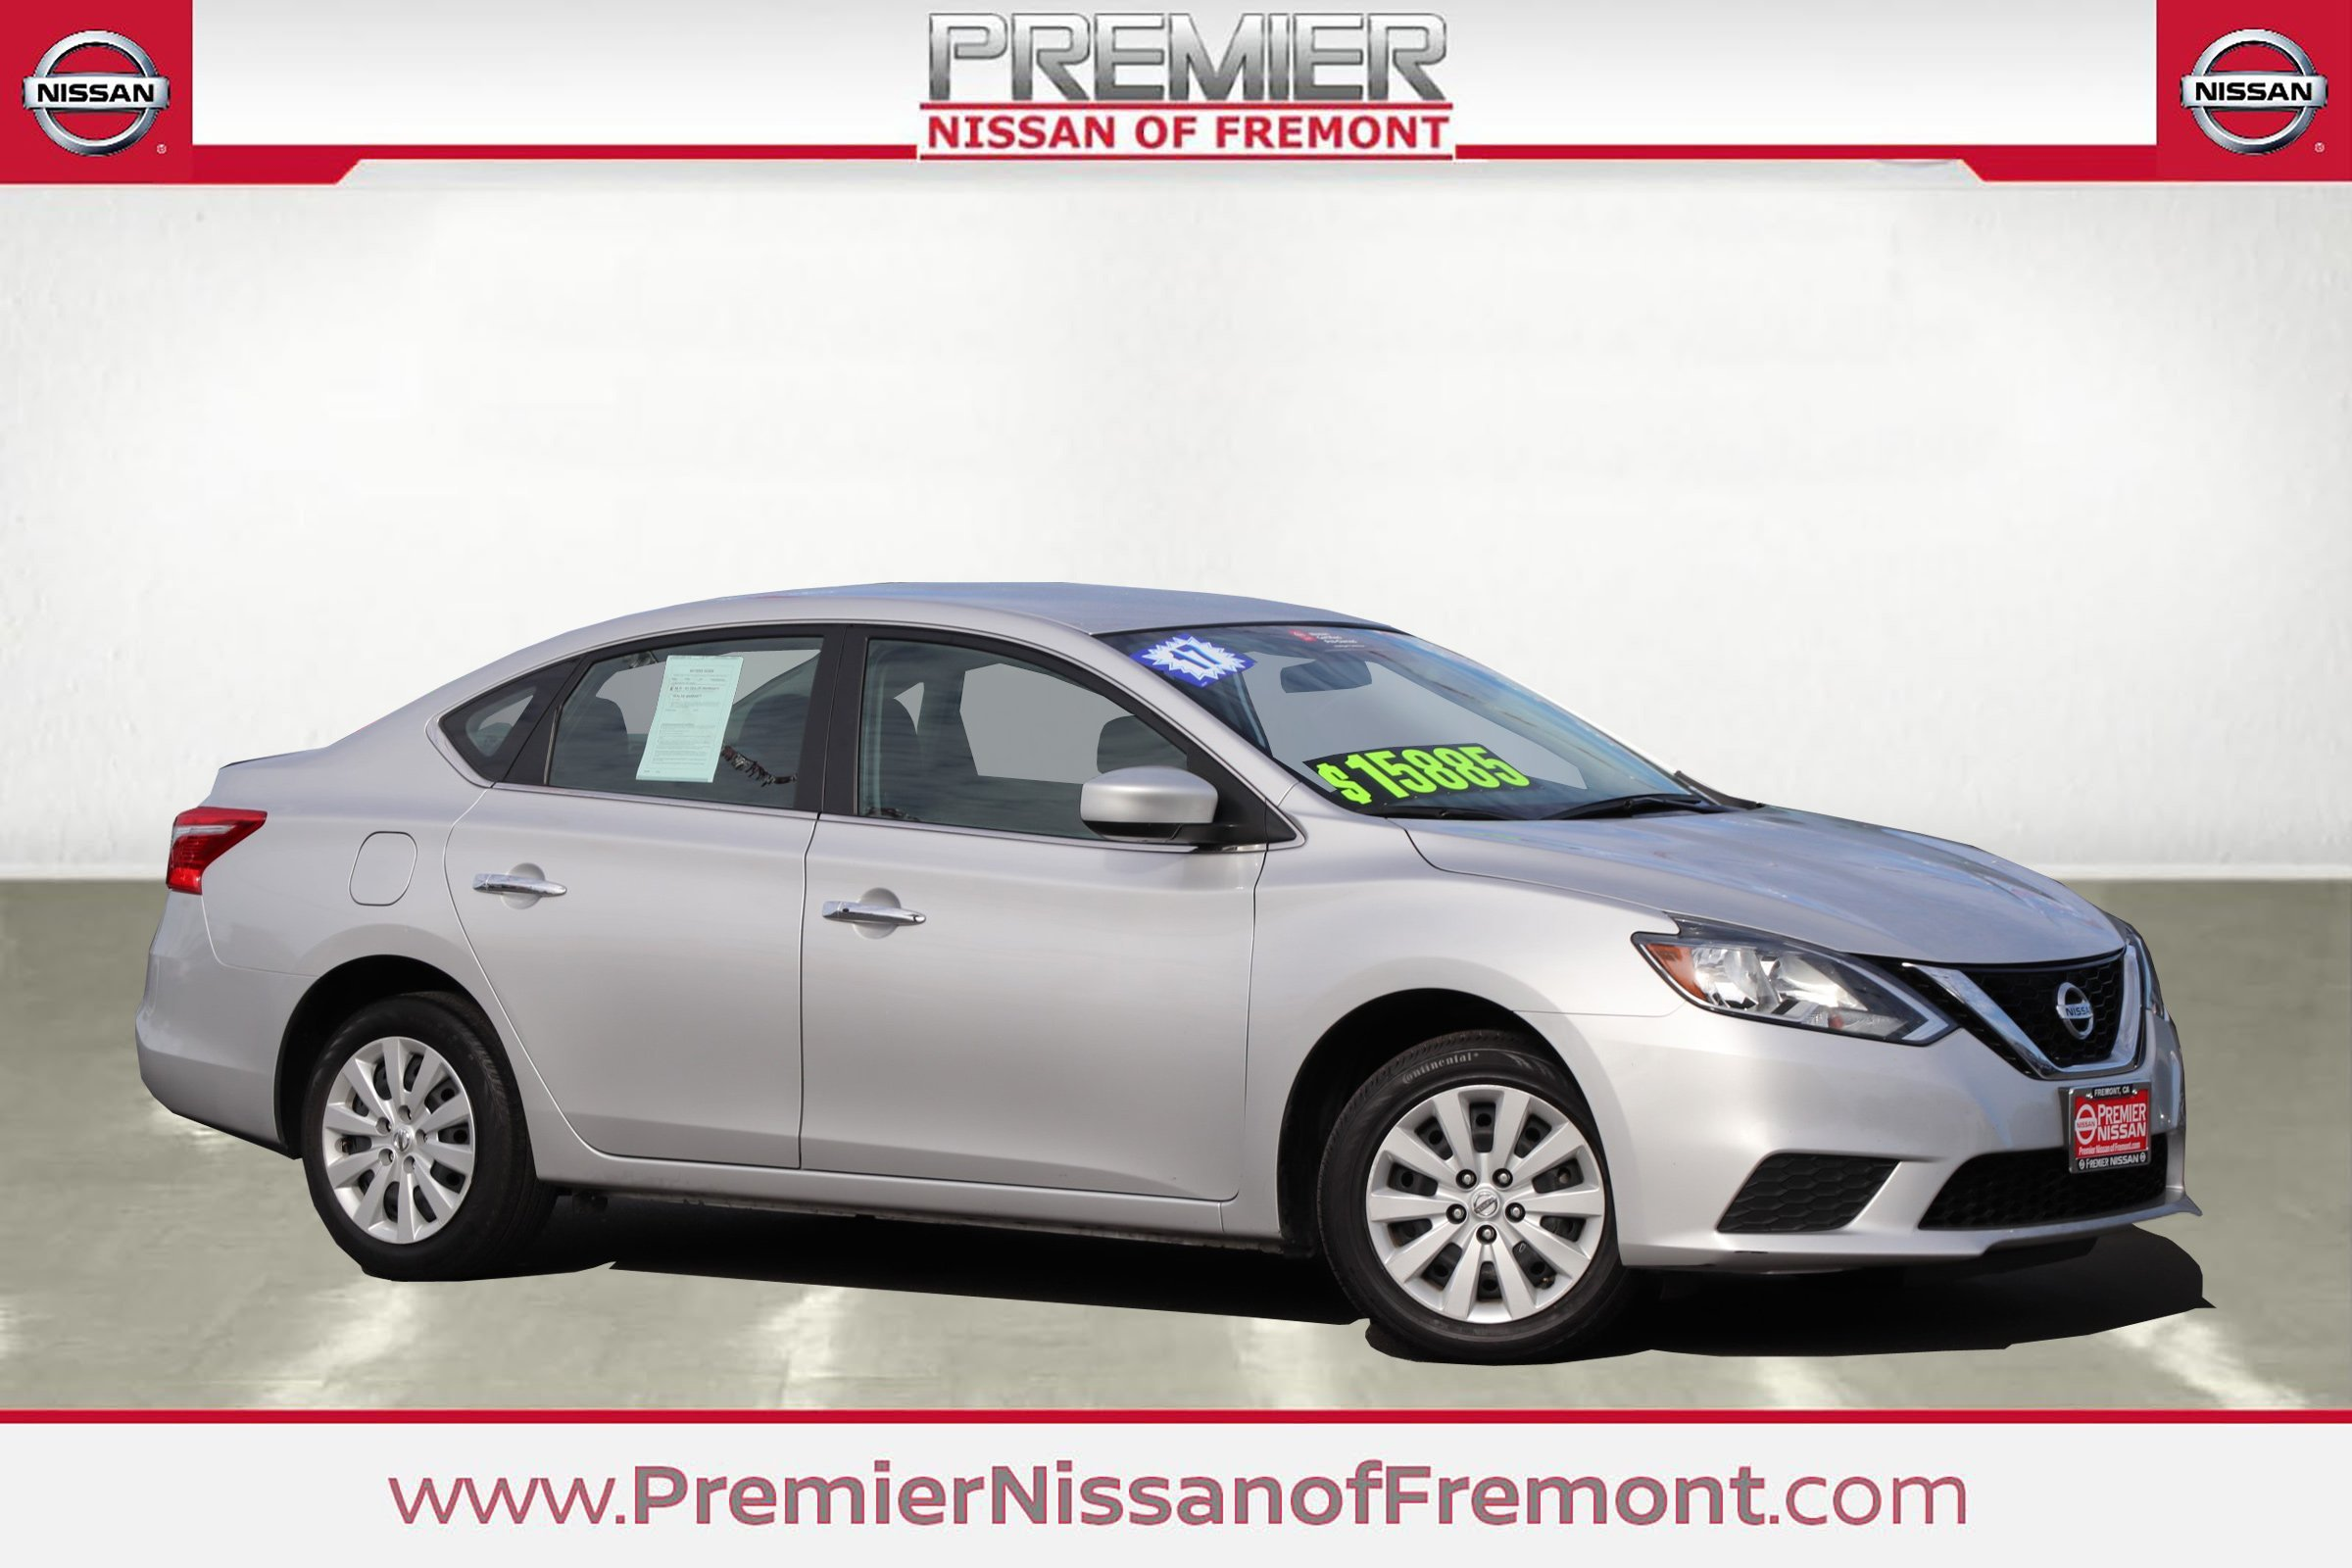 Certified Used Cars For Sale: Used Cars Fremont Luxury Certified Or Used Vehicles For